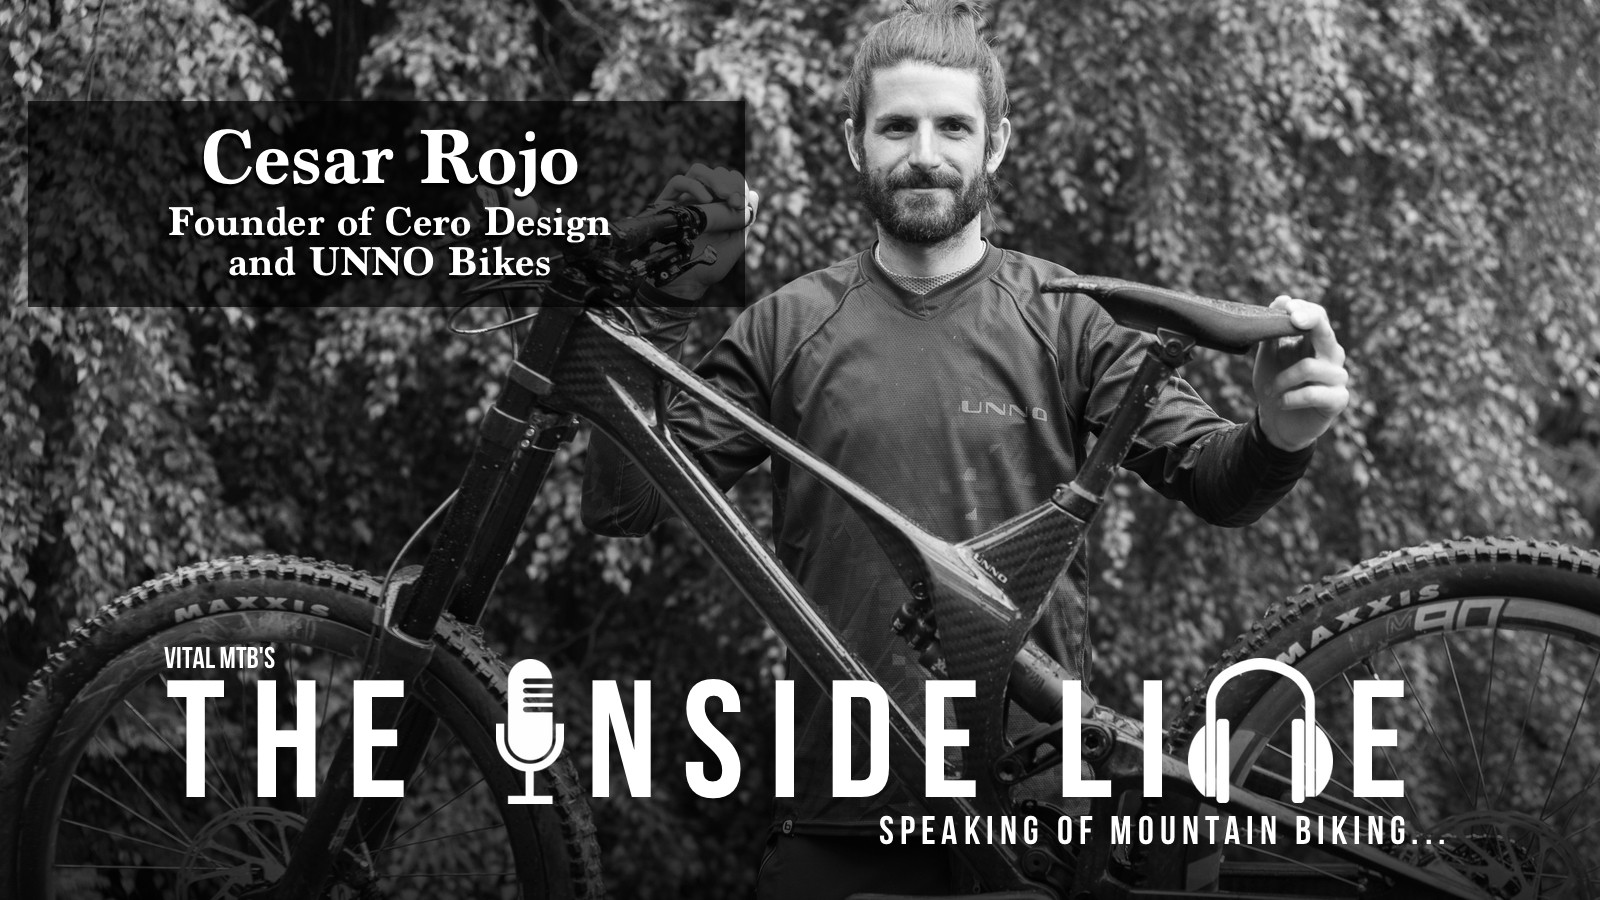 The Inside Line Podcast - Cesar Rojo, Founder of UNNO and Cero Design